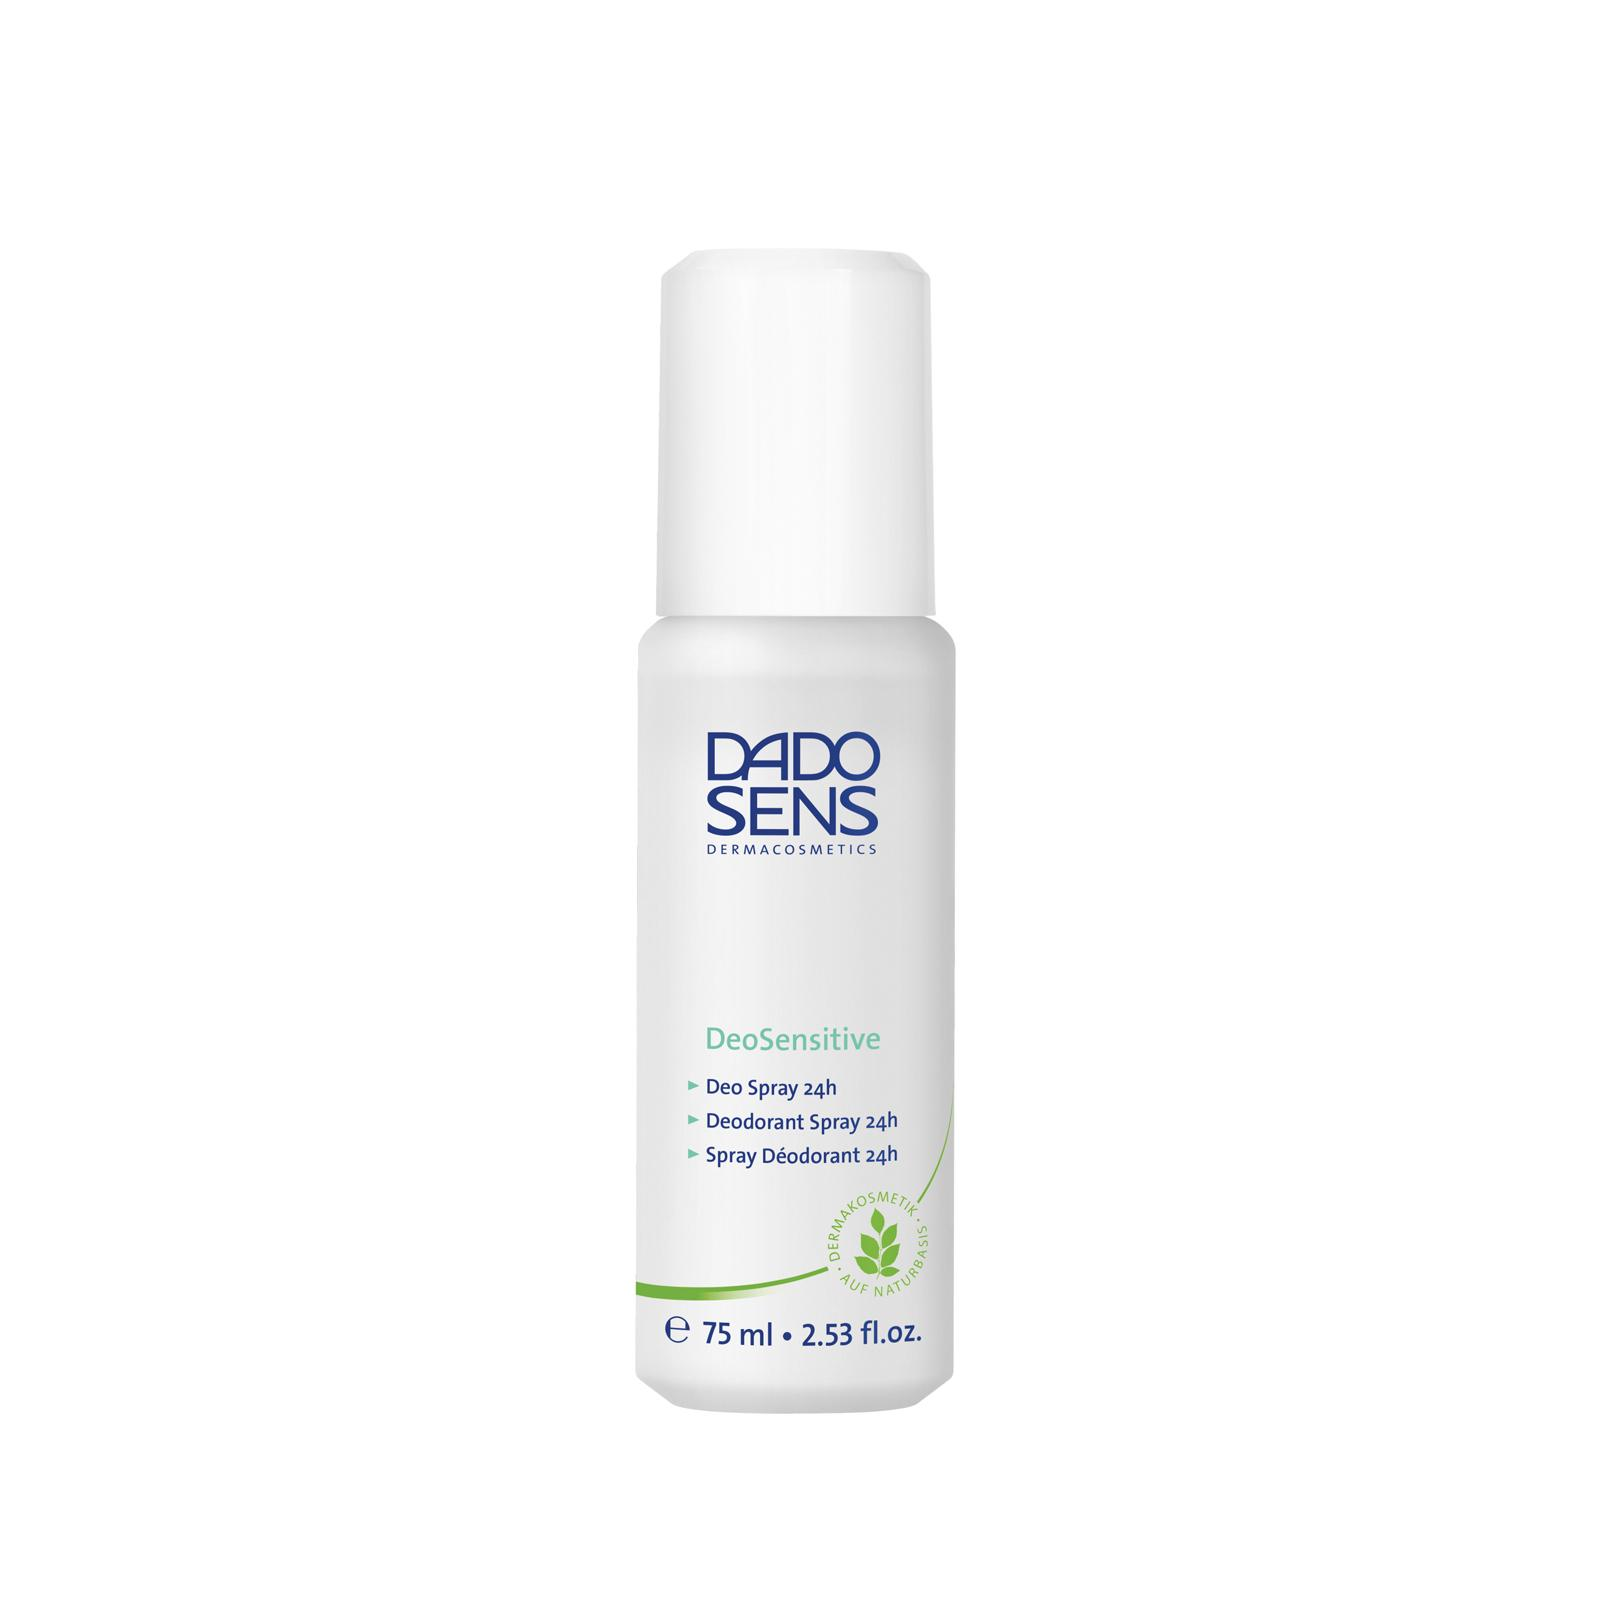 Dado Sens Deo sprej 24h Sensitive 75 ml